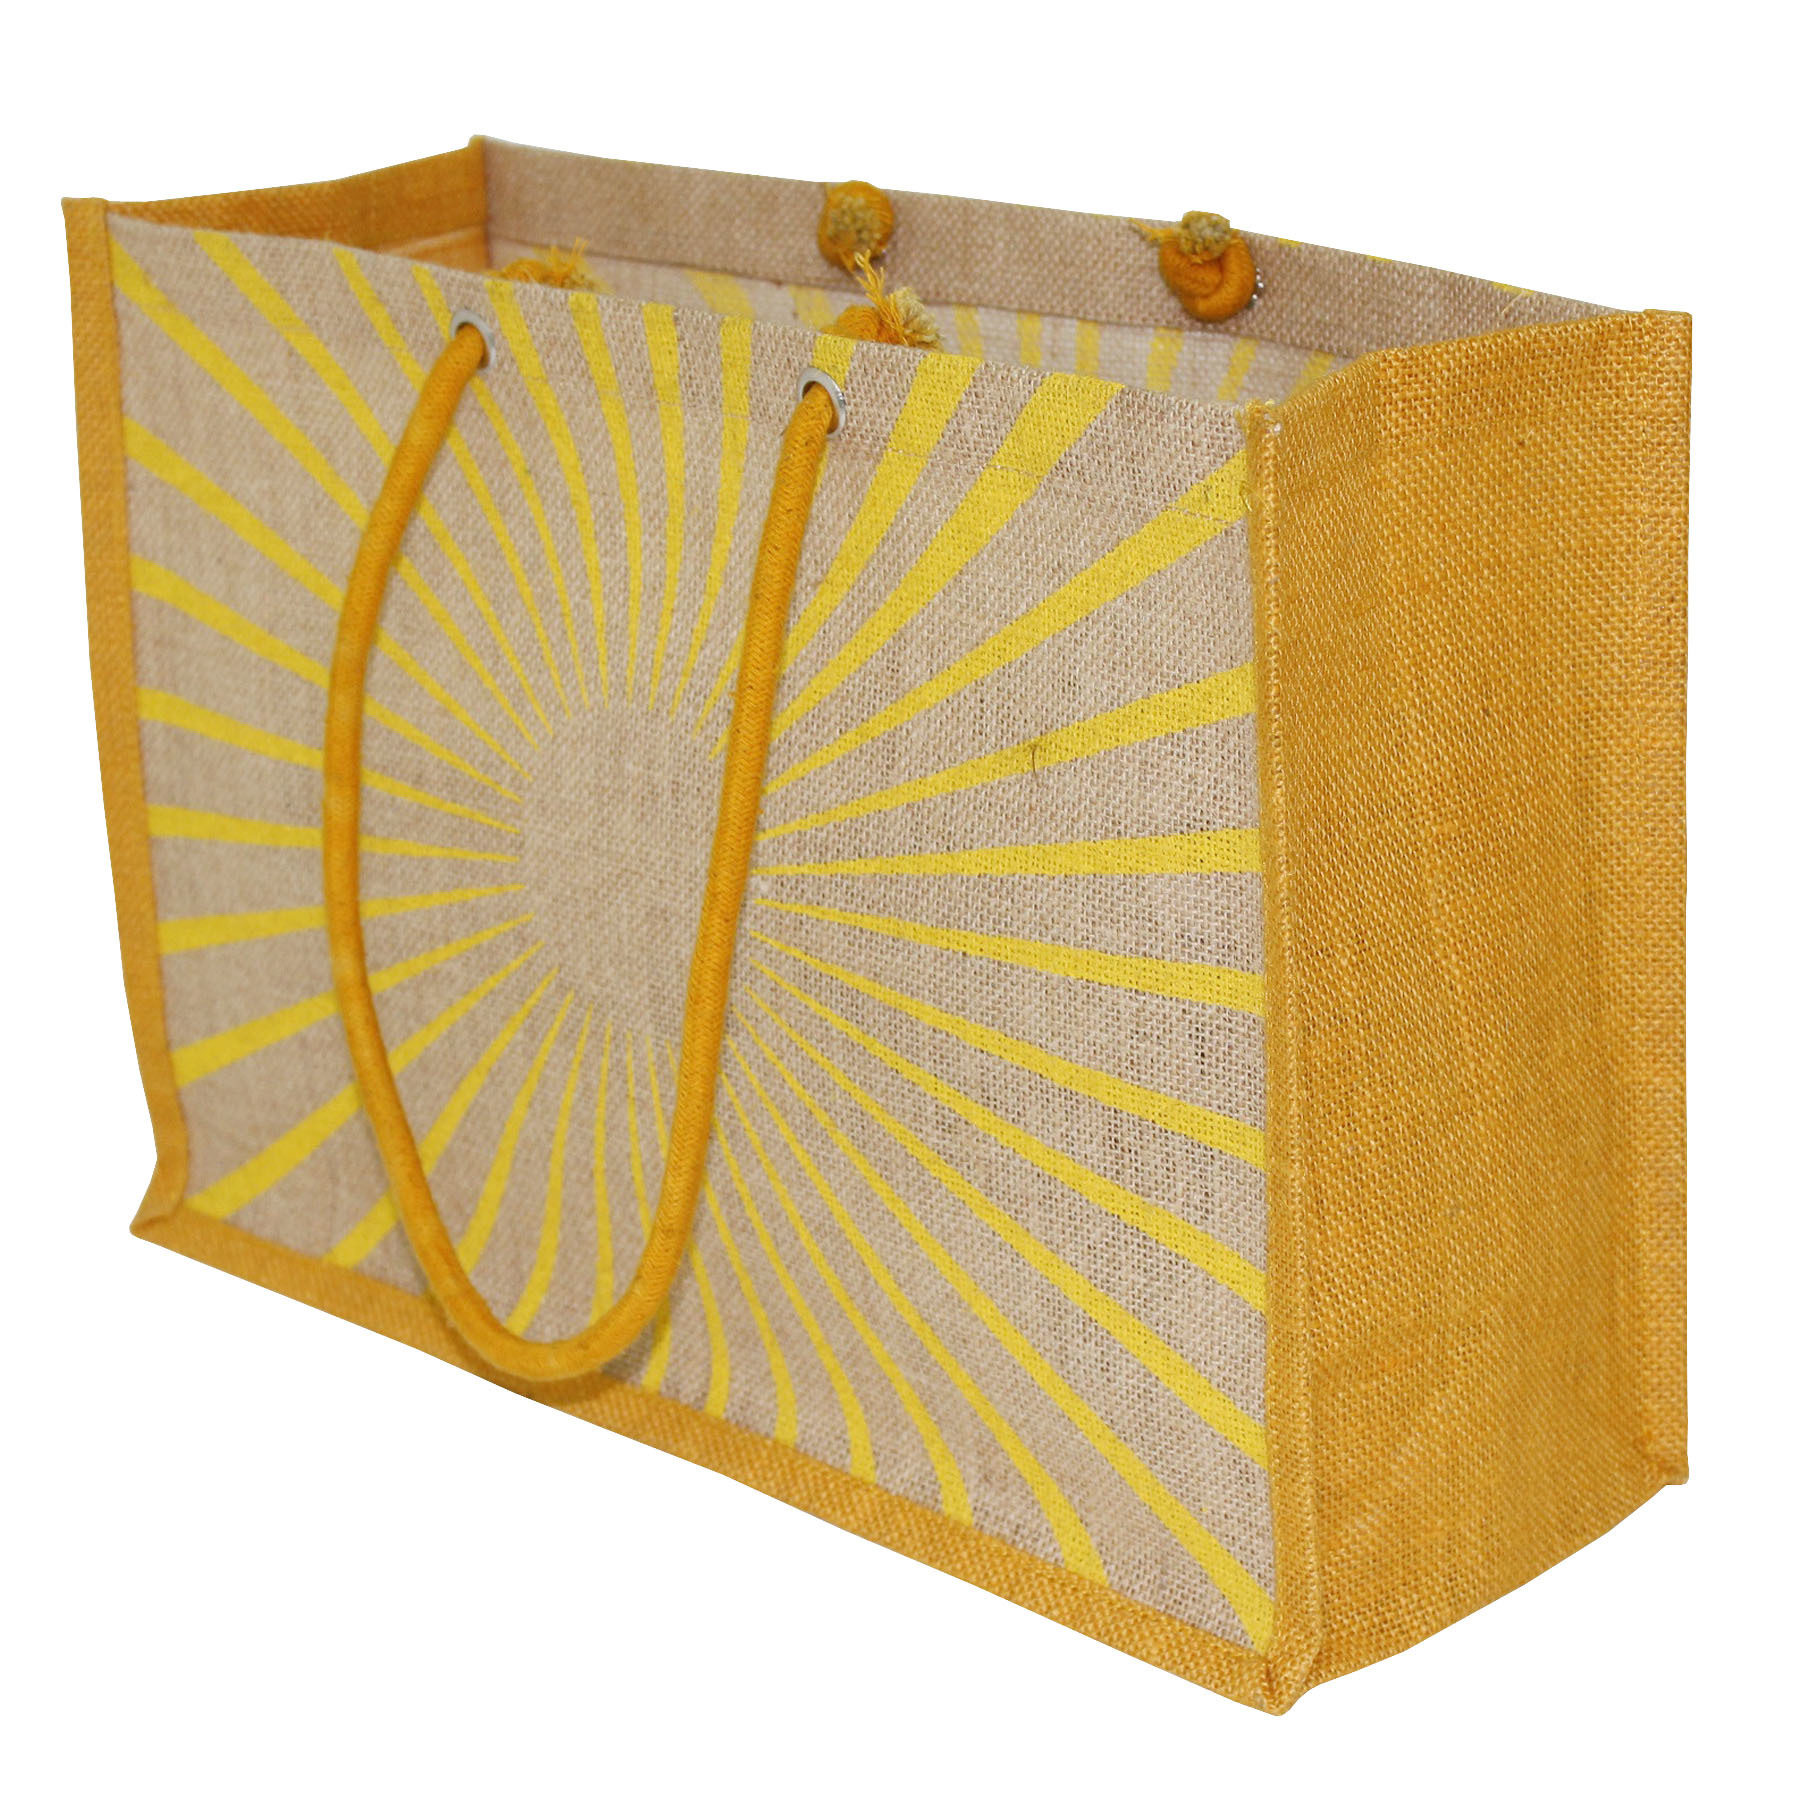 PP Laminated Jute Tote Bag With Cotton Cord Handle